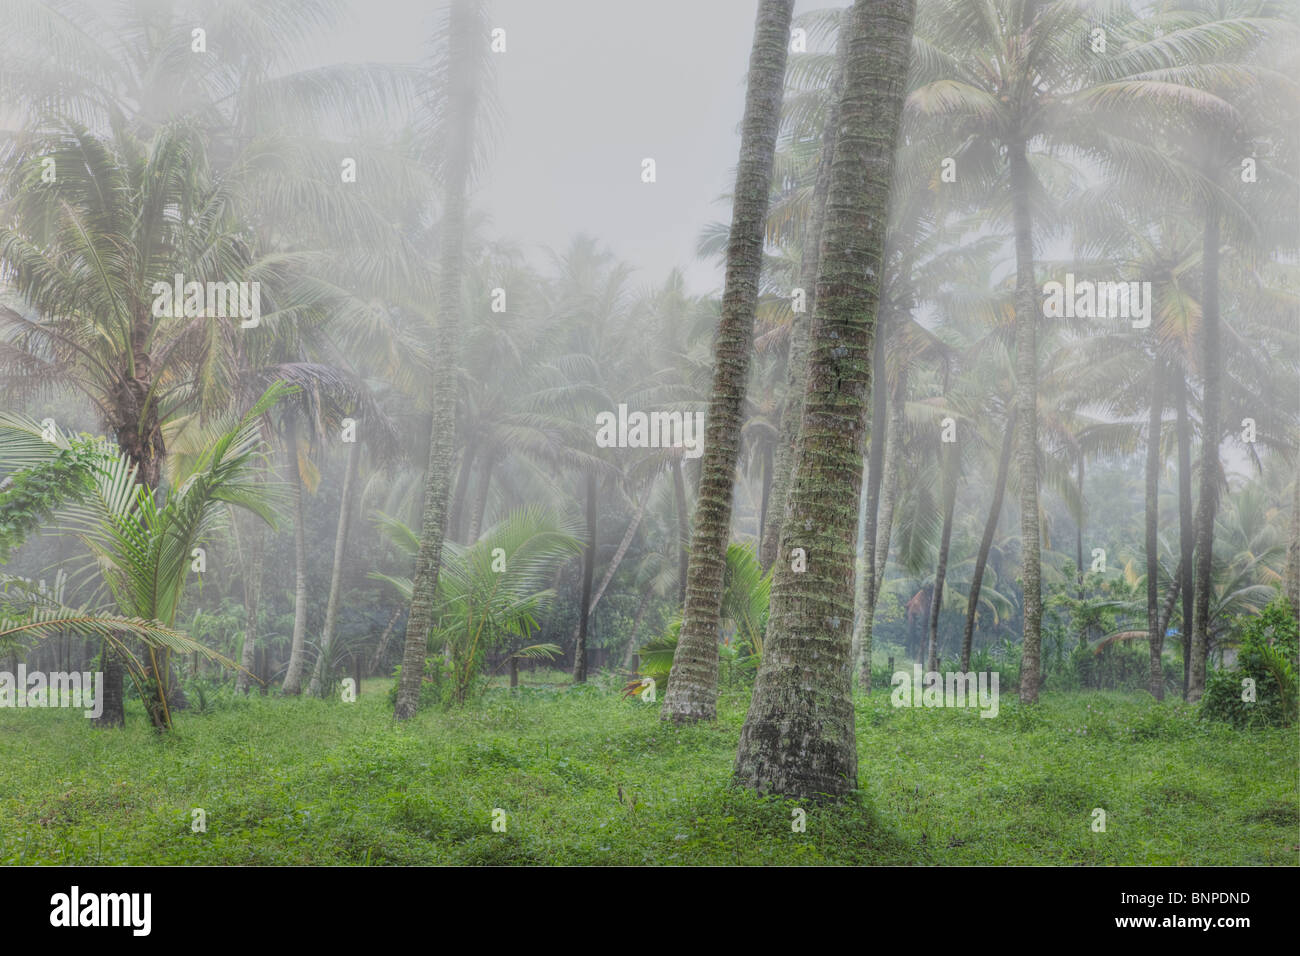 Tall coconut trees shrouded in mist. Kochi, Kerala, India. Digital Composite - Stock Image